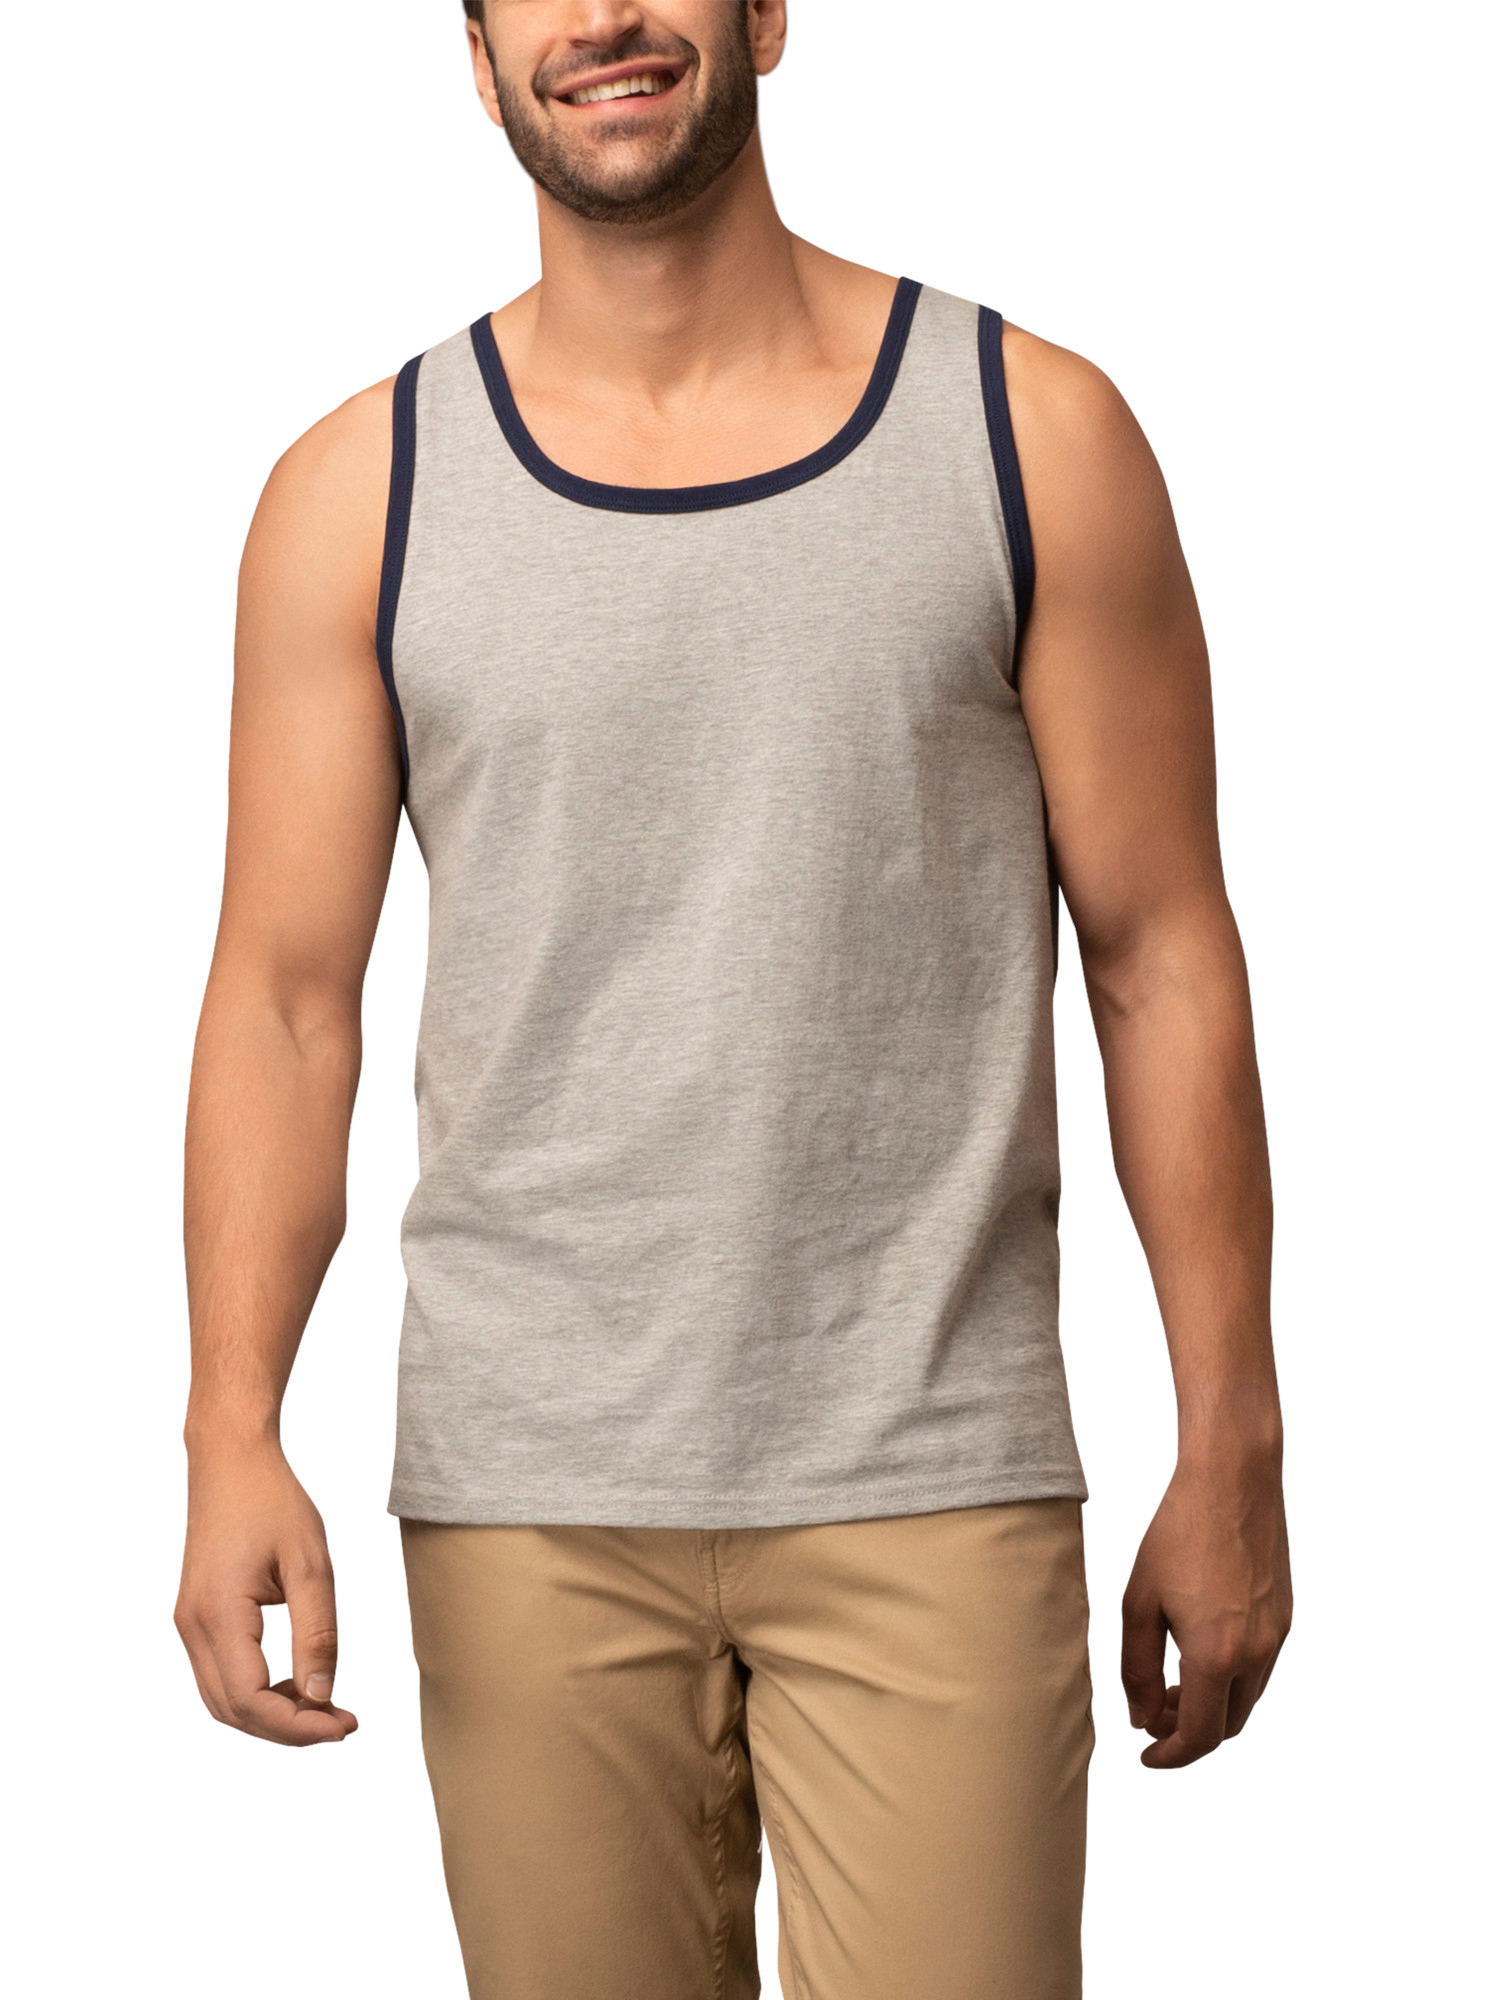 BC341 Tank Top Fruit Of The Loom Mens Athletic Sleeveless Vest